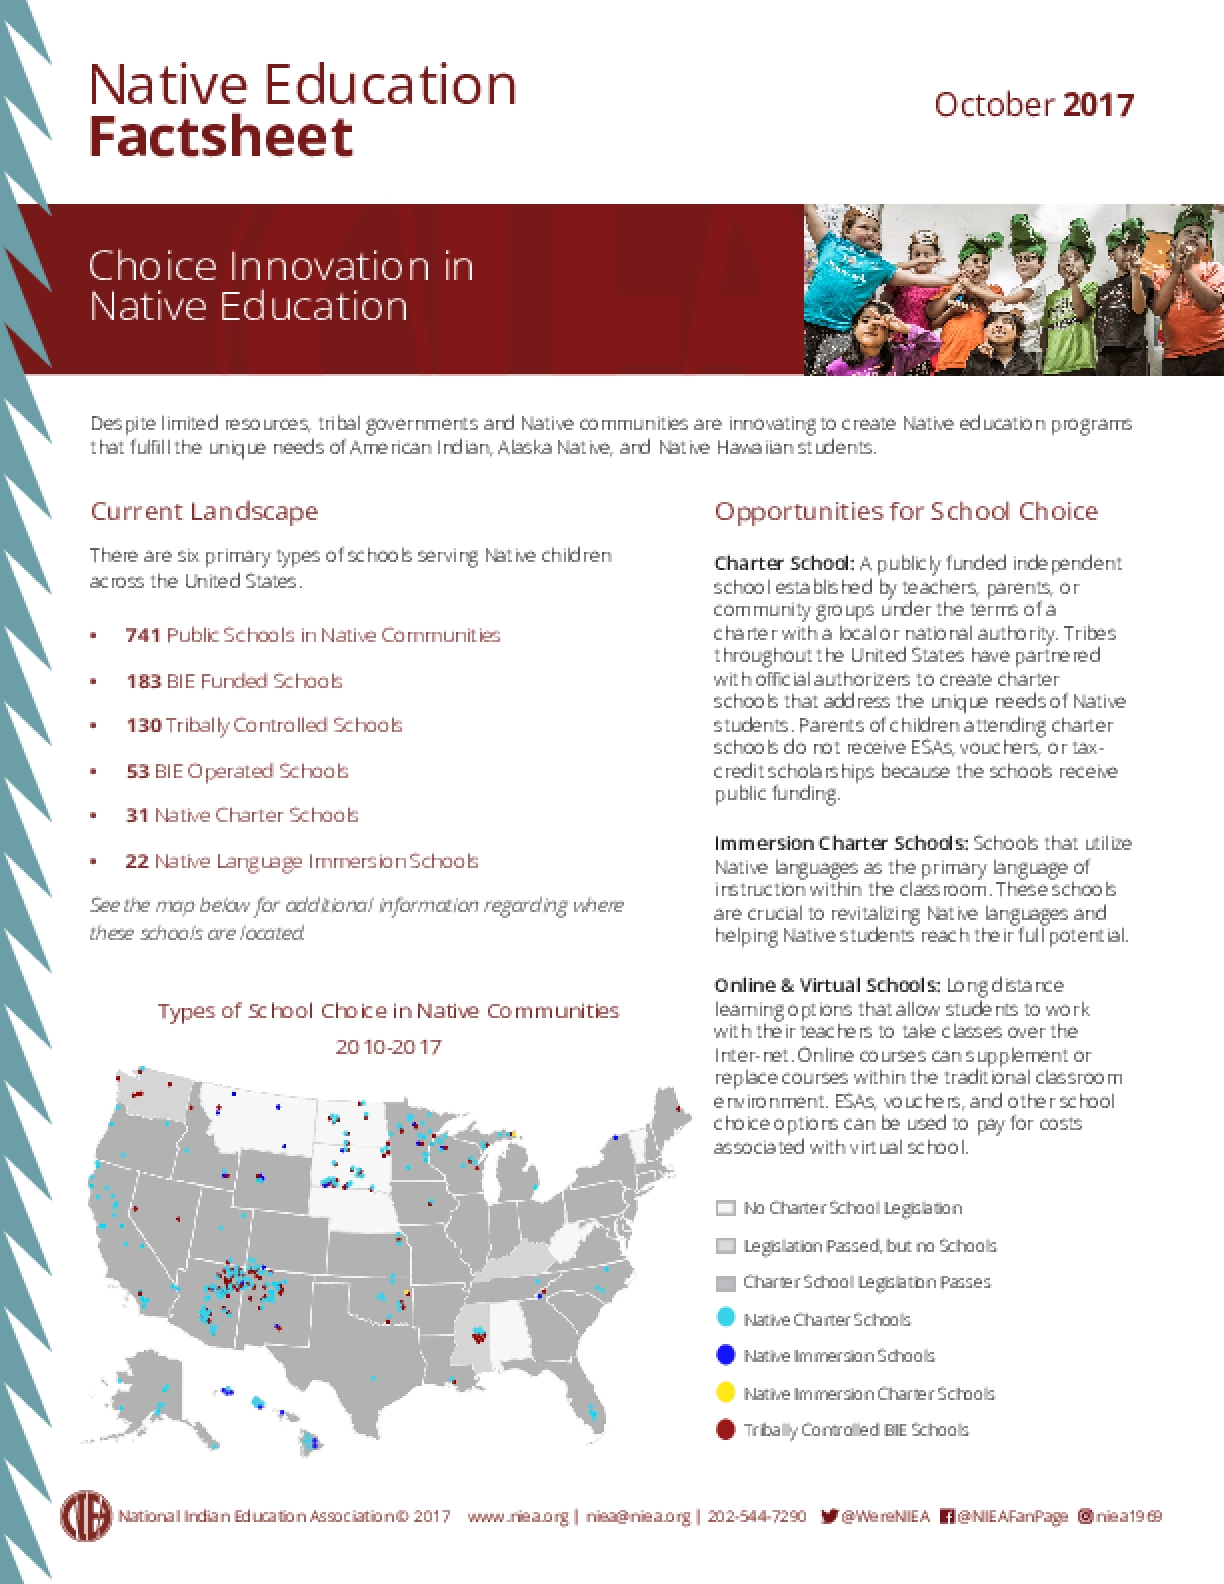 Native Education Factsheet: Choice Innovation in Native Education